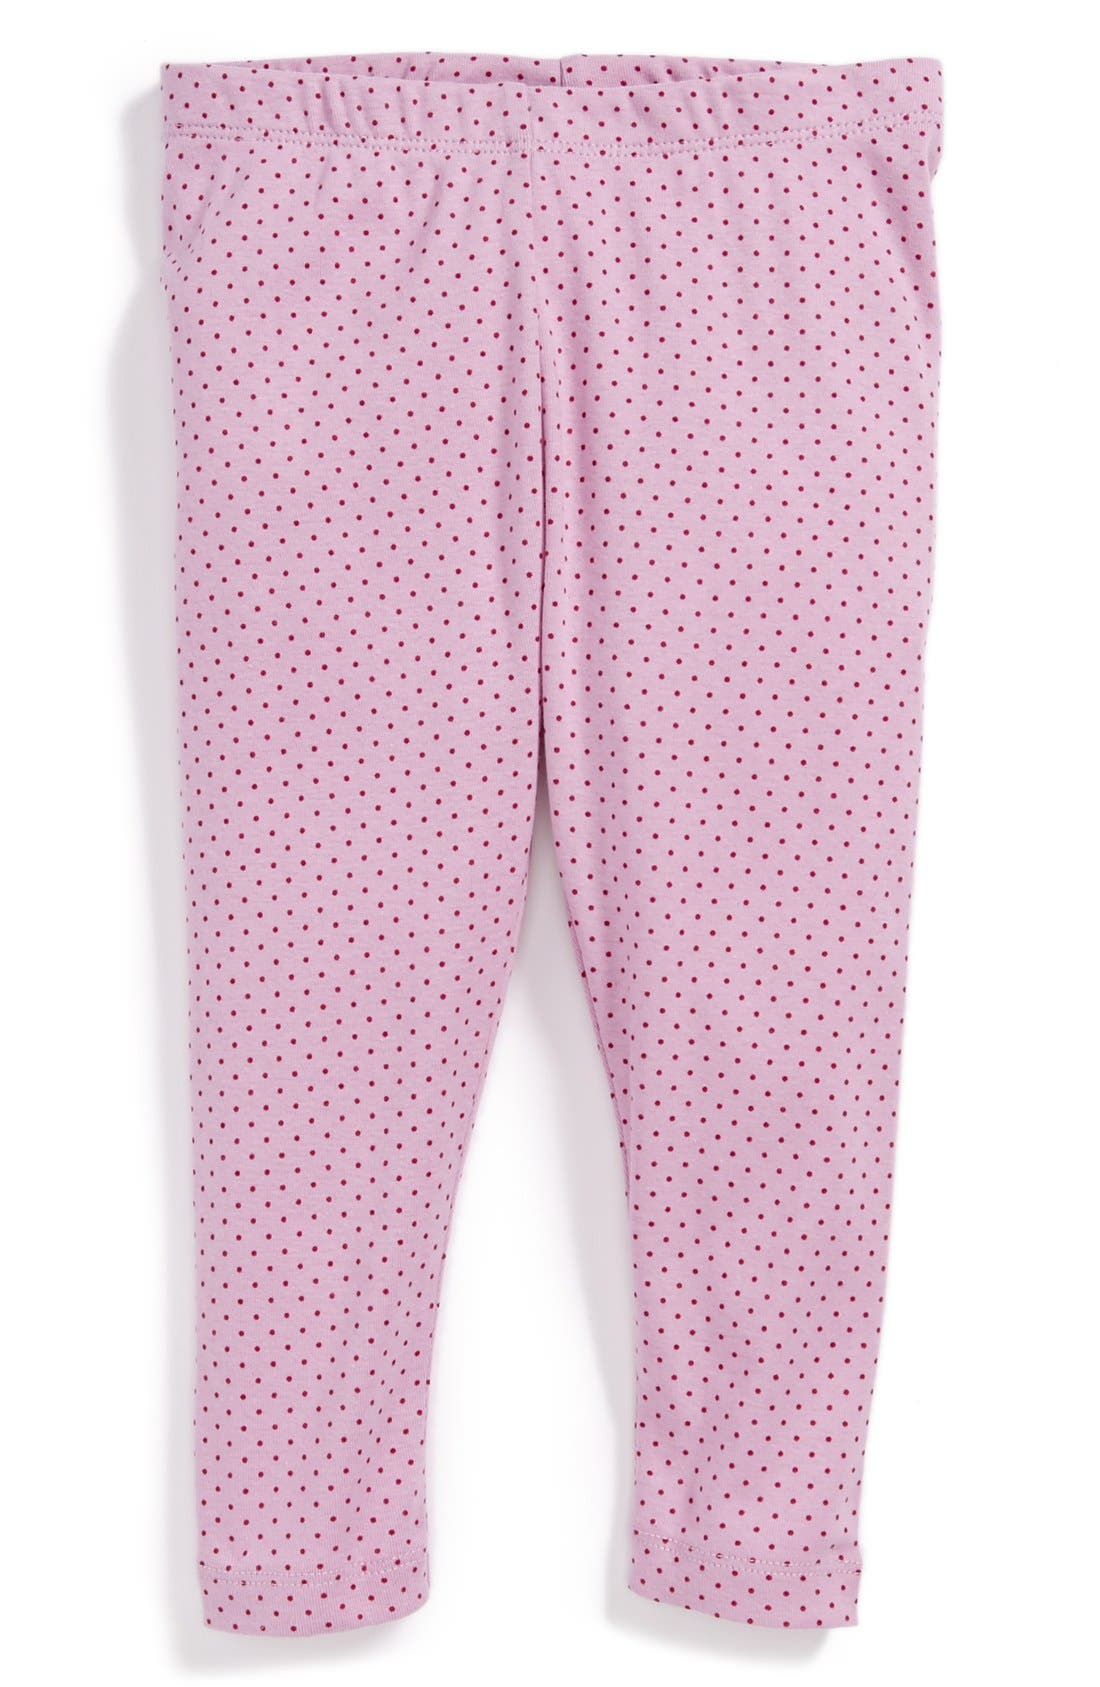 Alternate Image 1 Selected - Tea Collection Dot Print Capri Leggings (Toddler Girls, Little Girls & Big Girls)